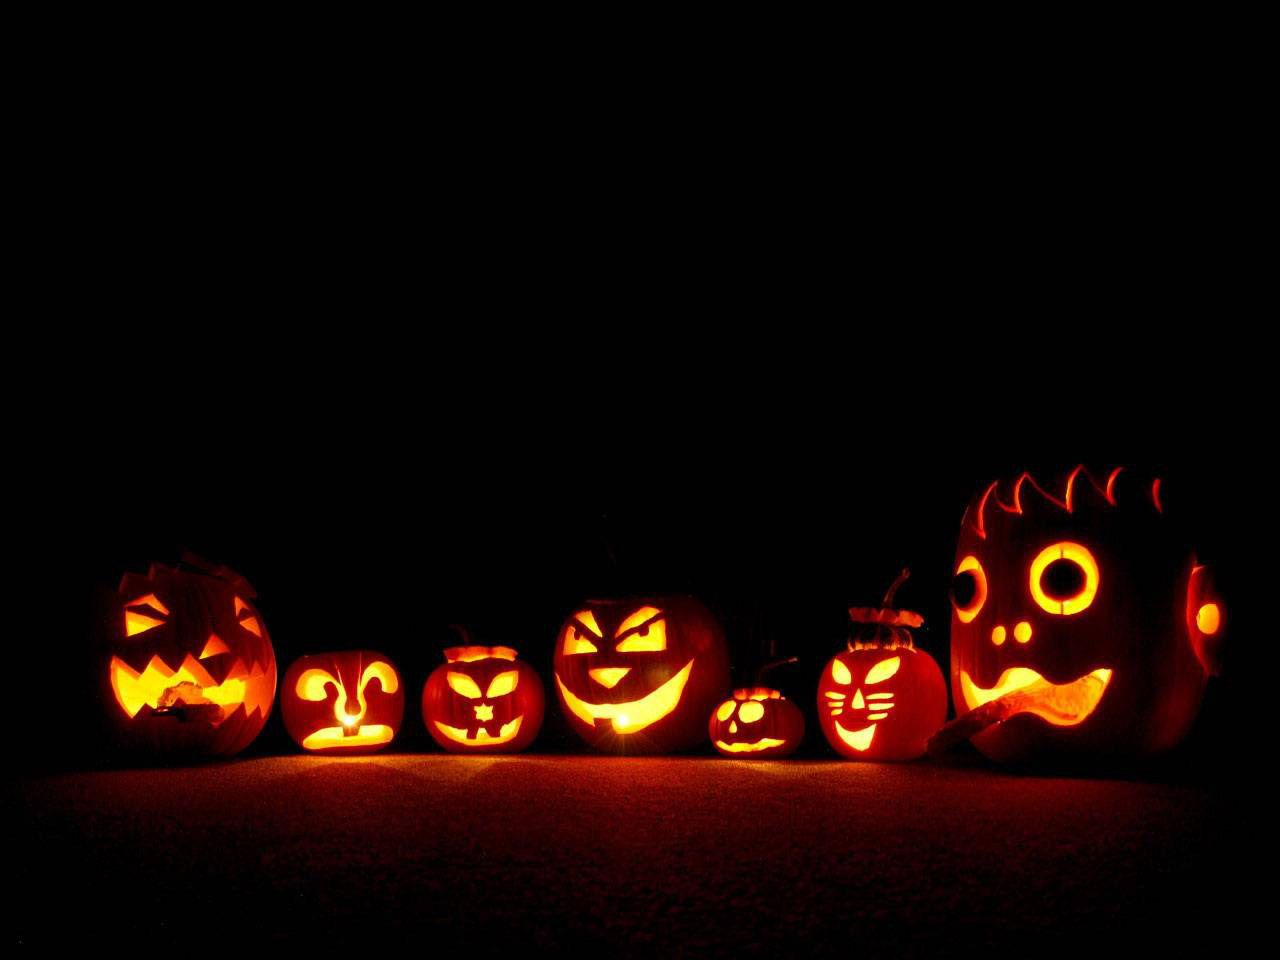 Nice Free Animated Halloween Desktop Wallpaper | WALLPAPERBOX